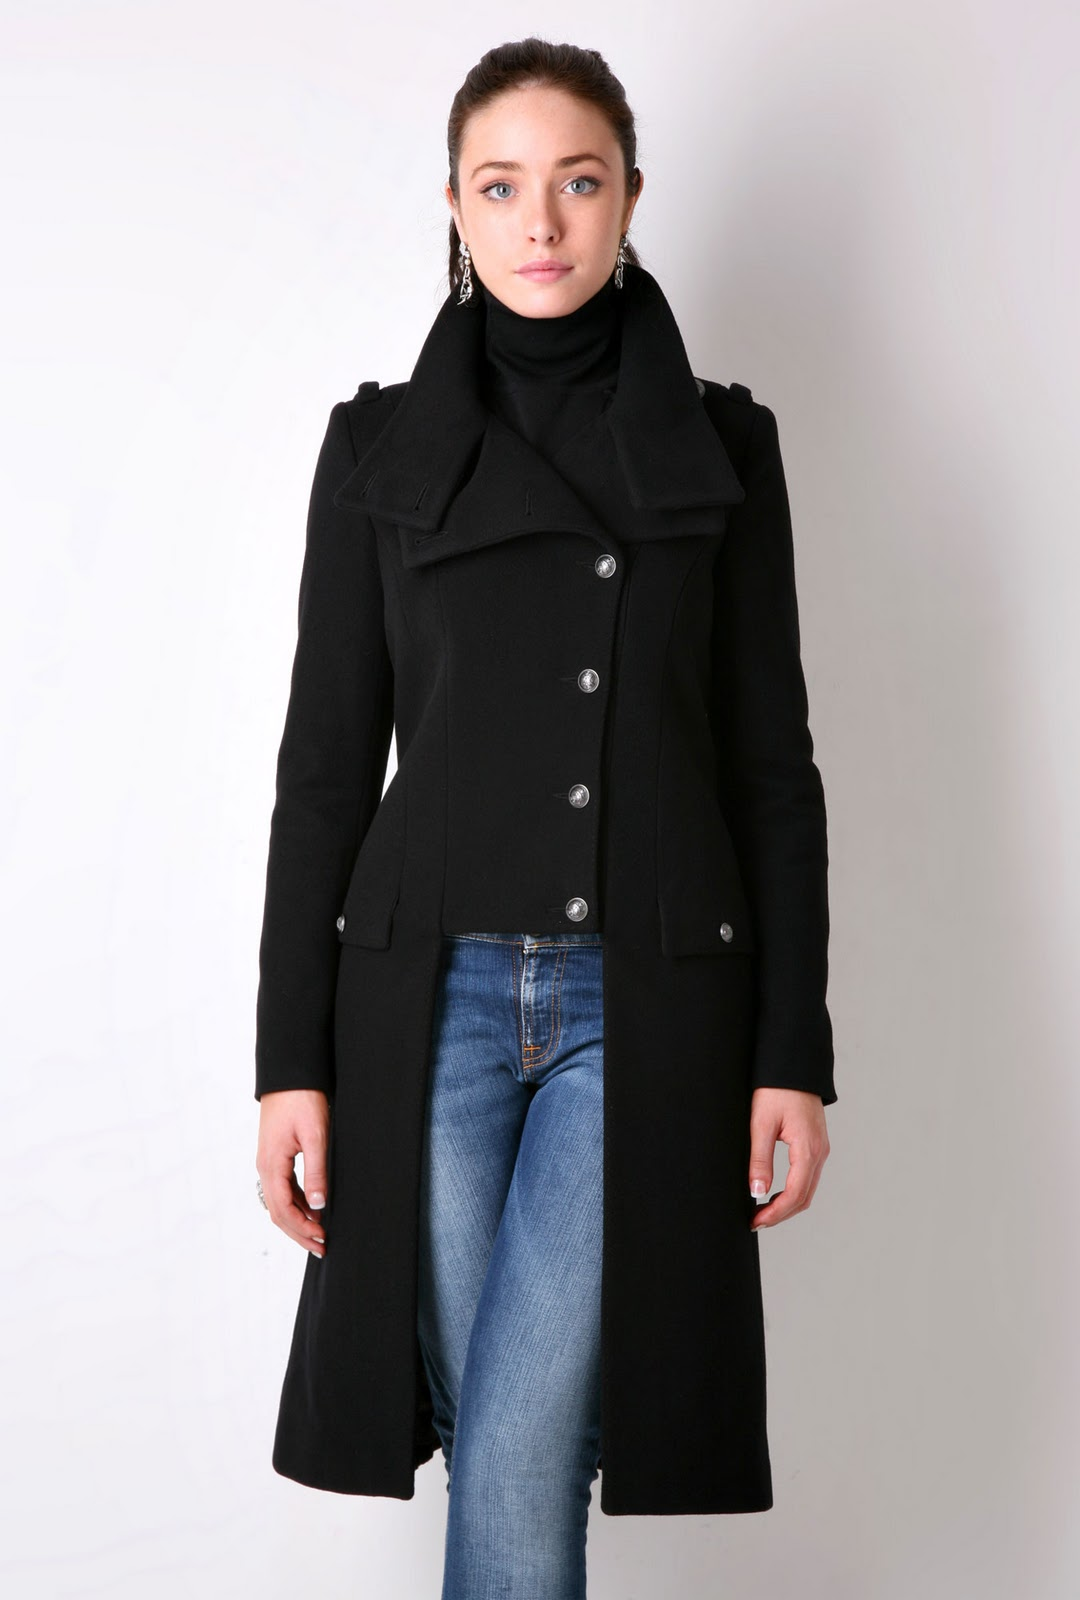 Coat styles for women